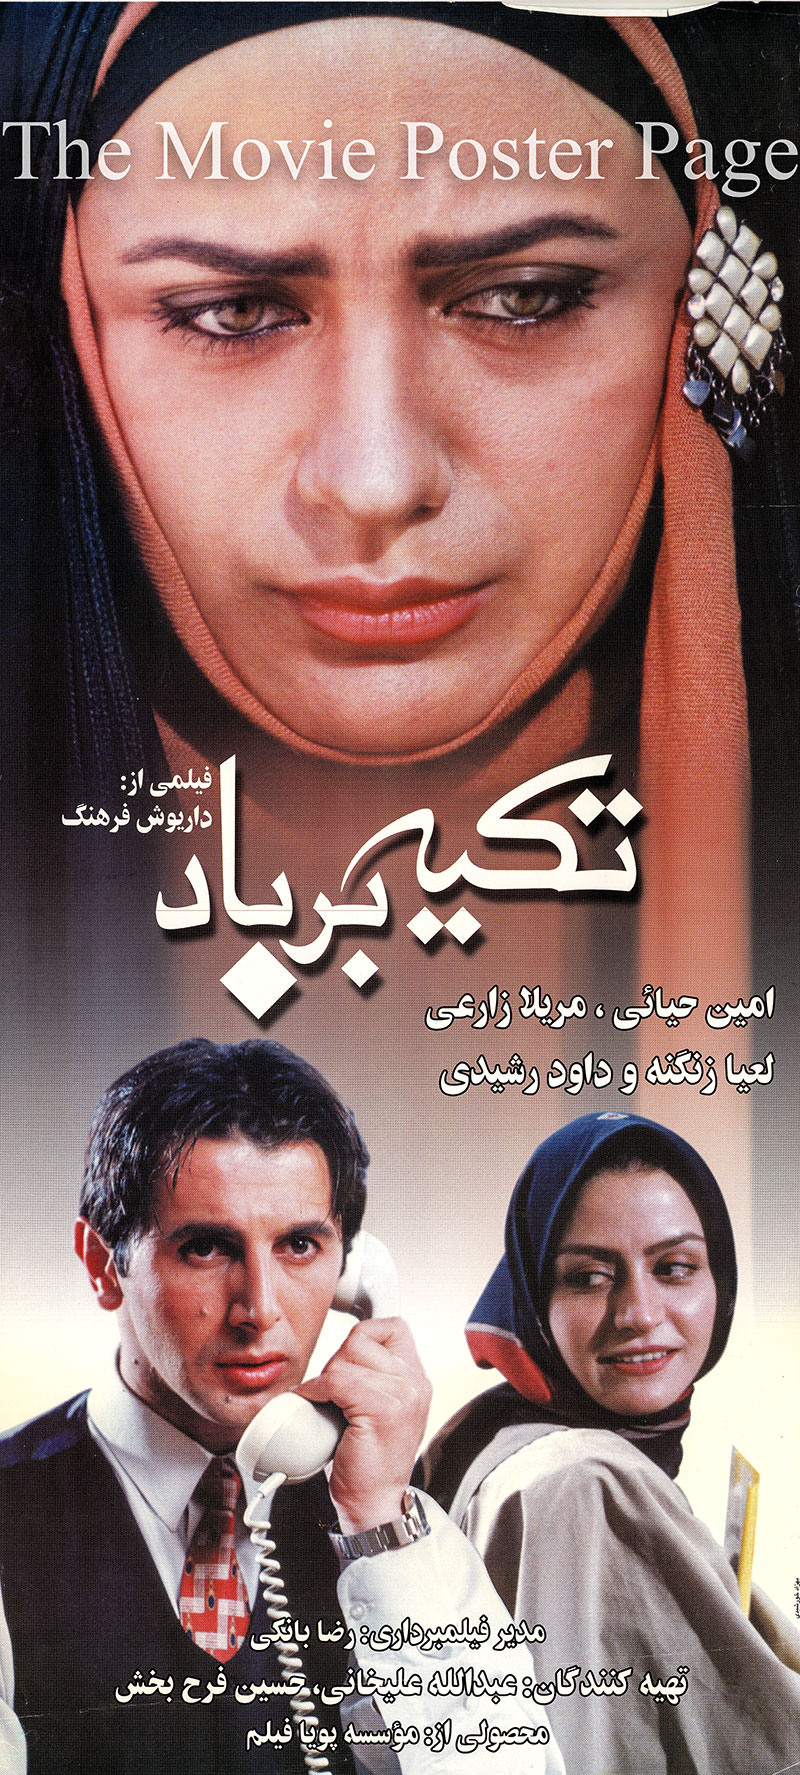 Pictured is an Iranian promotional poster for the 2000 Dariush Farhang film Leaning on the Wind starring Amin Hayayee.